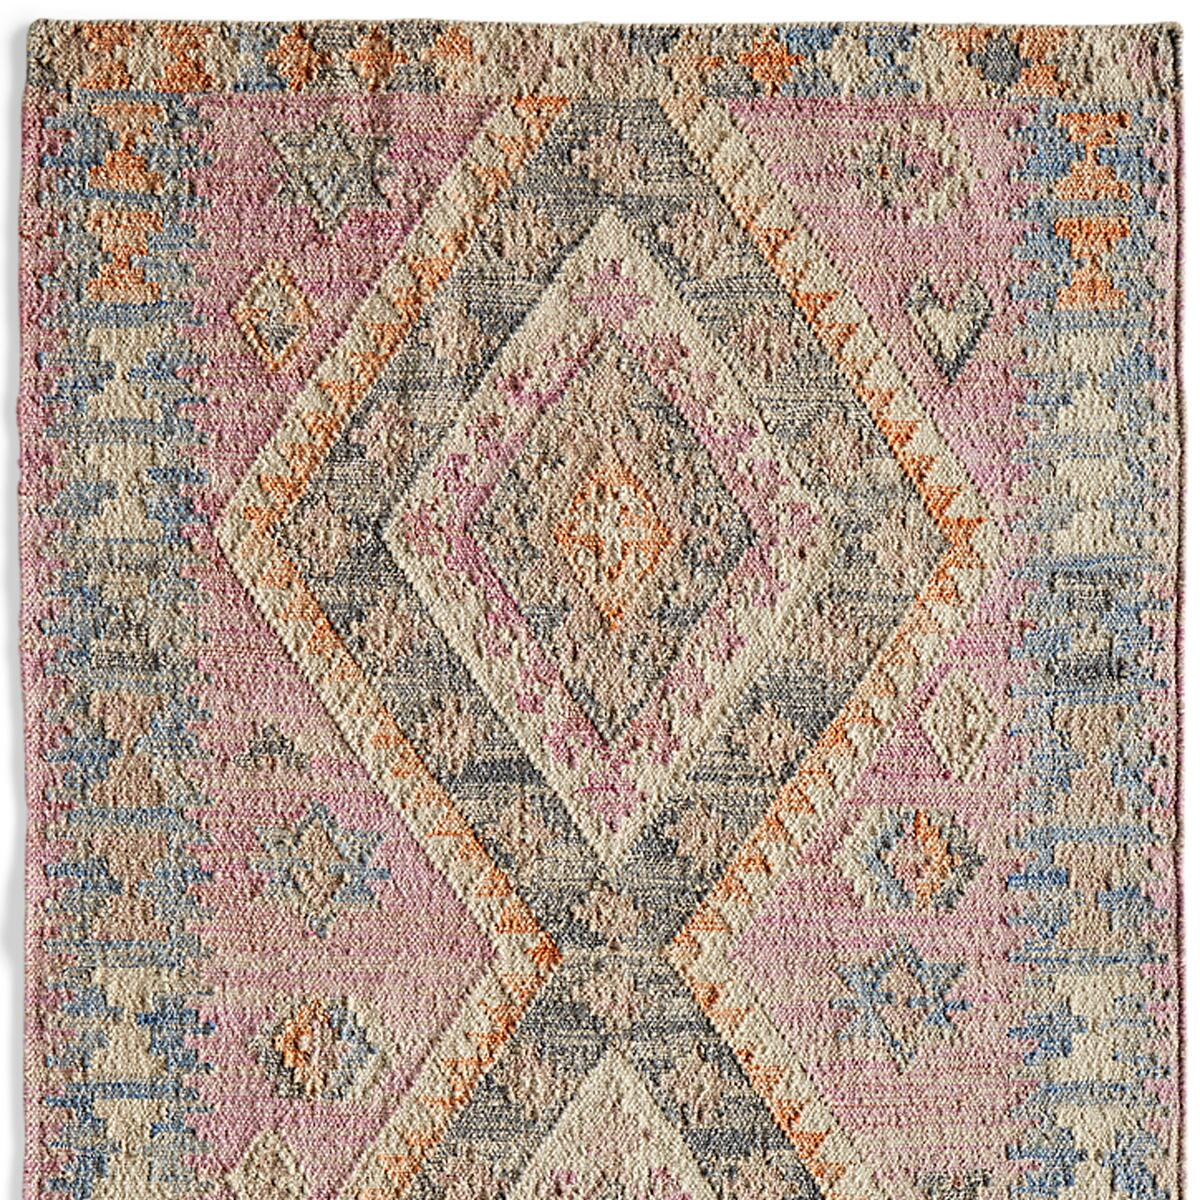 DIAMOND RANCH KILIM RUG - SM: View 1